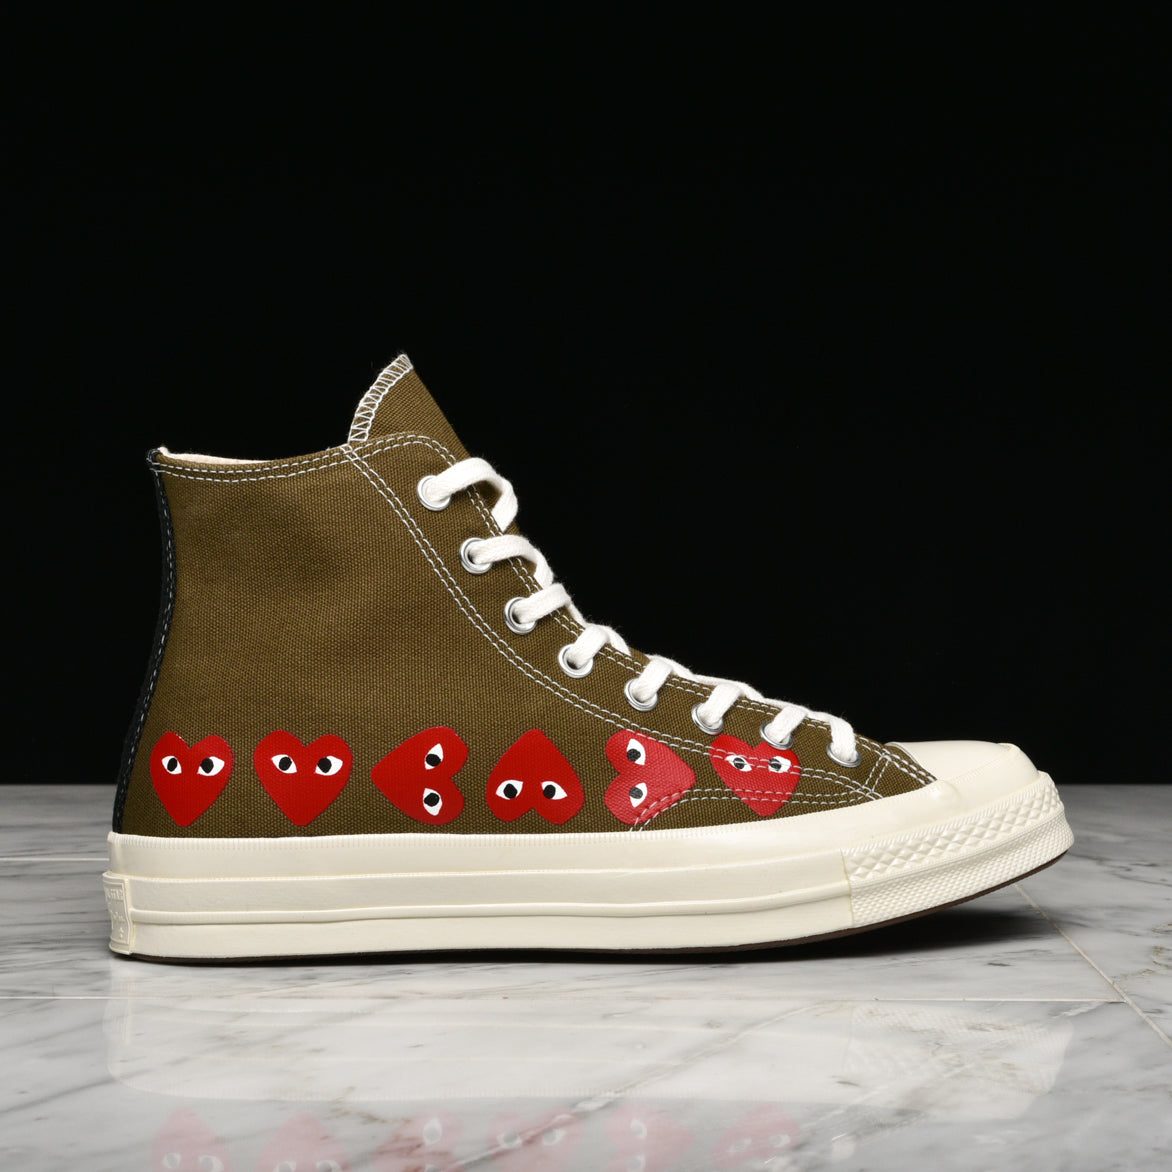 classic style of 2019 cheapest sale running shoes CDG PLAY X CONVERSE MULTI HEART CHUCK 70 HI - FIR GREEN